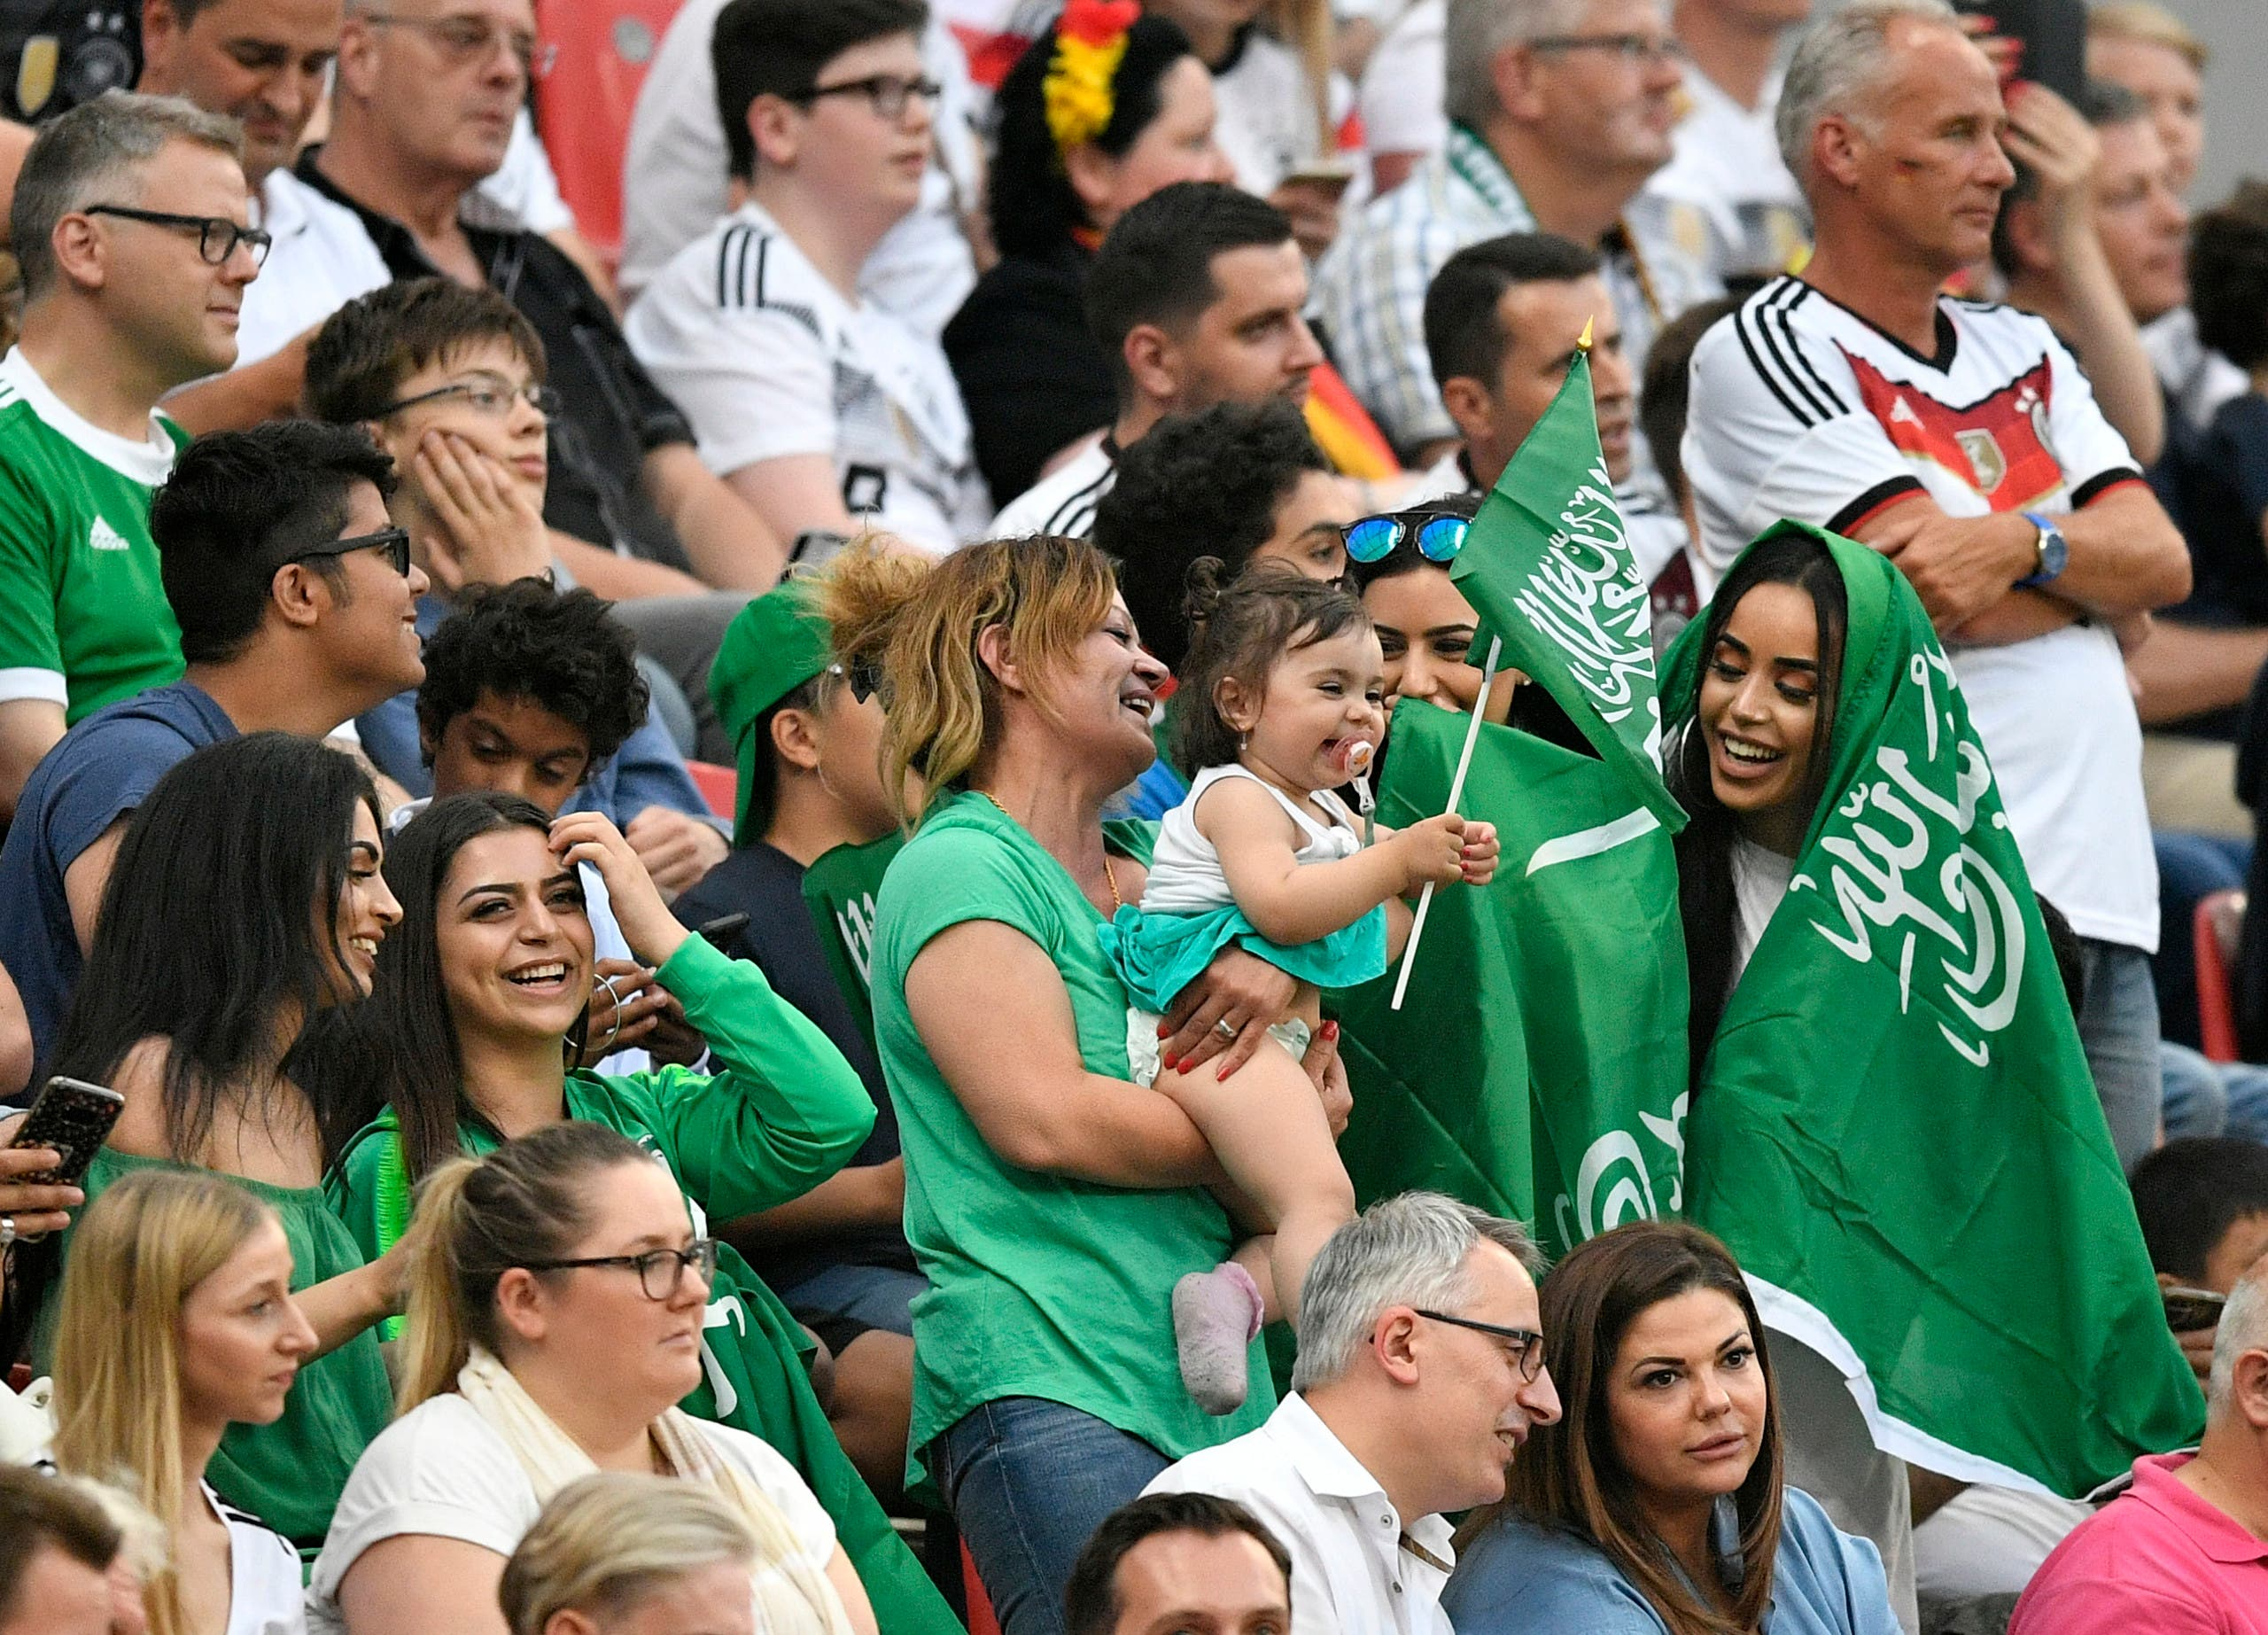 Saudi Arabia fans support their team during a friendly soccer match between Germany and Saudi Arabia at BayArena in Leverkusen, Germany, Friday. (AP)